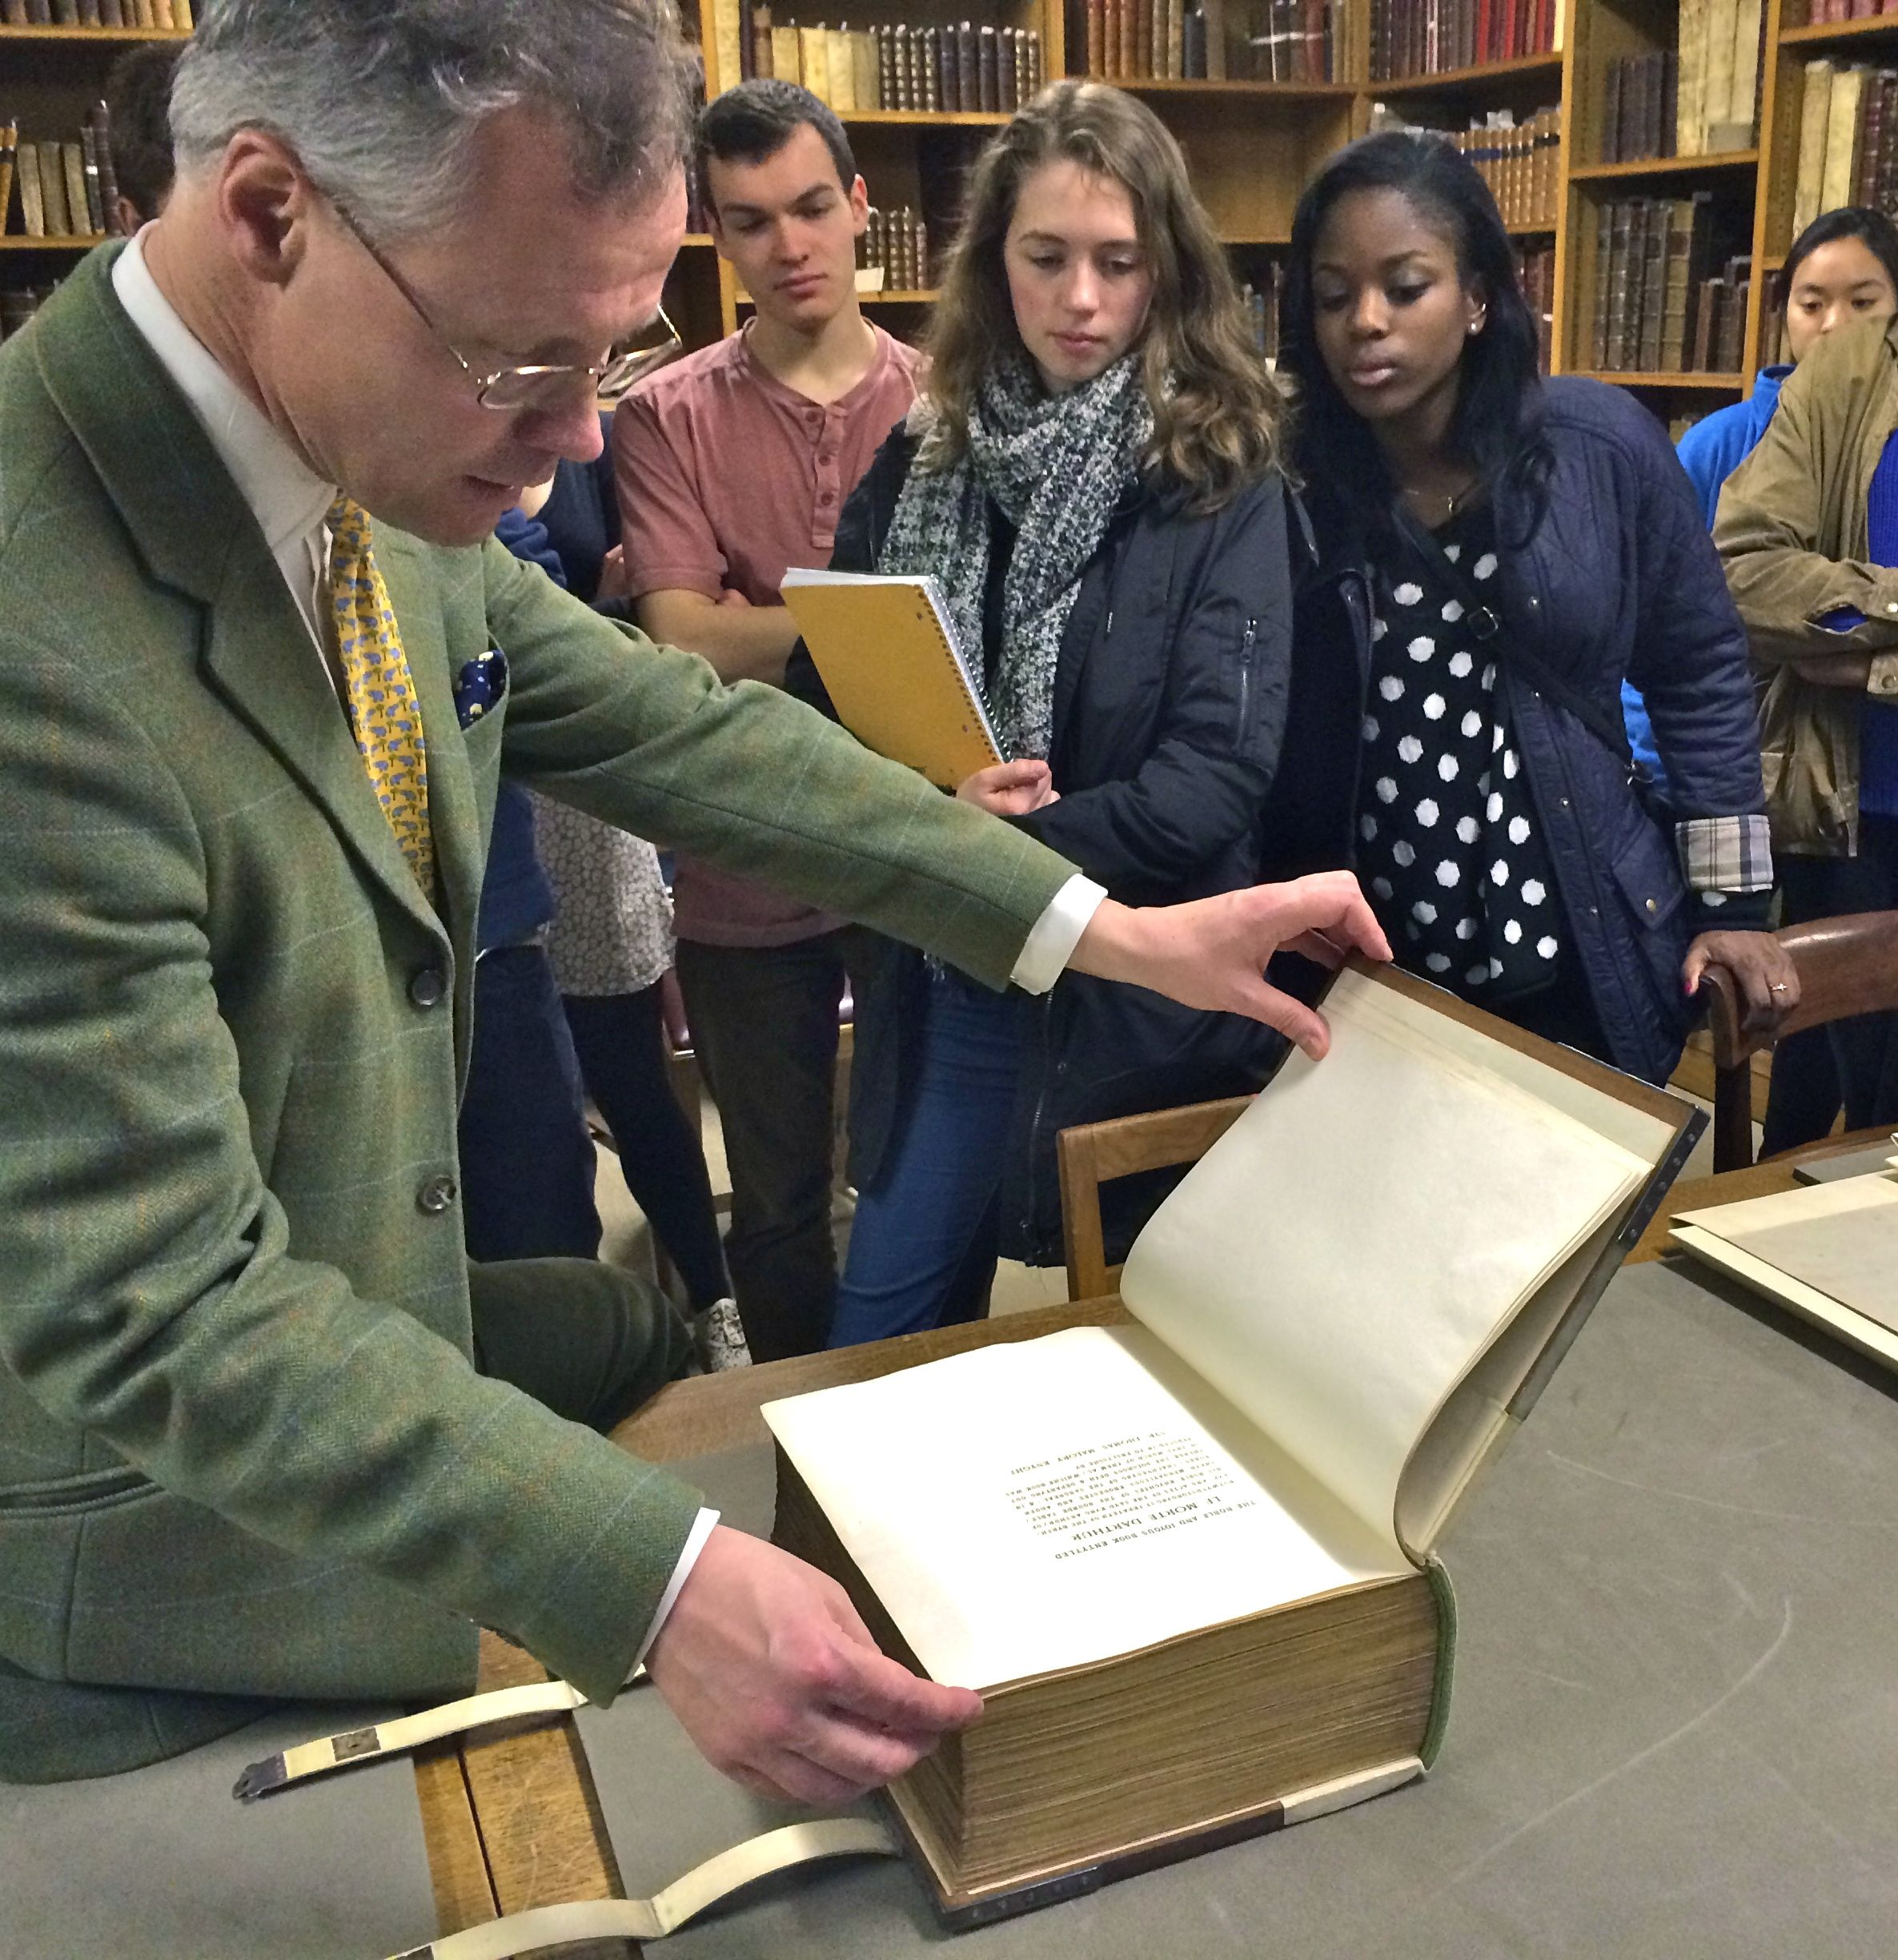 The Oxford group recently visited the Ashmolean Museum Print Room, where Colin Harrison, the Senior Assistant Keeper for Western Art, showed the students a 19th century copy of Le Morte d'Arthur that was illustrated by painters from the Pre-Raphaelite Brotherhood.  (Photo Credit: P. Nilsson)